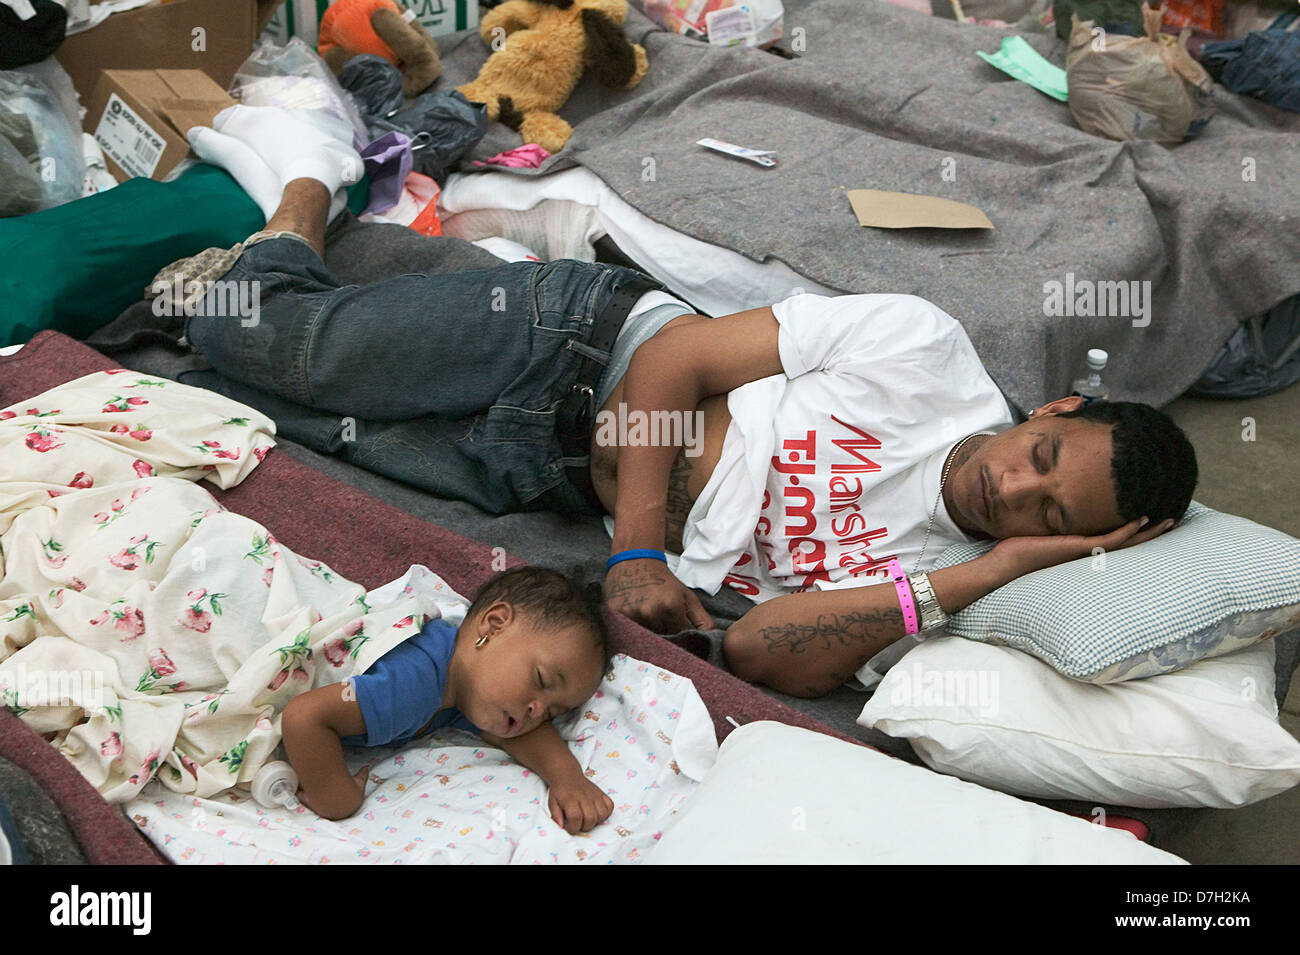 Hurricane Katrina survivors from New Orleans rest after being evacuated to a Red Cross shelter in the Houston Astrodome - Stock Image